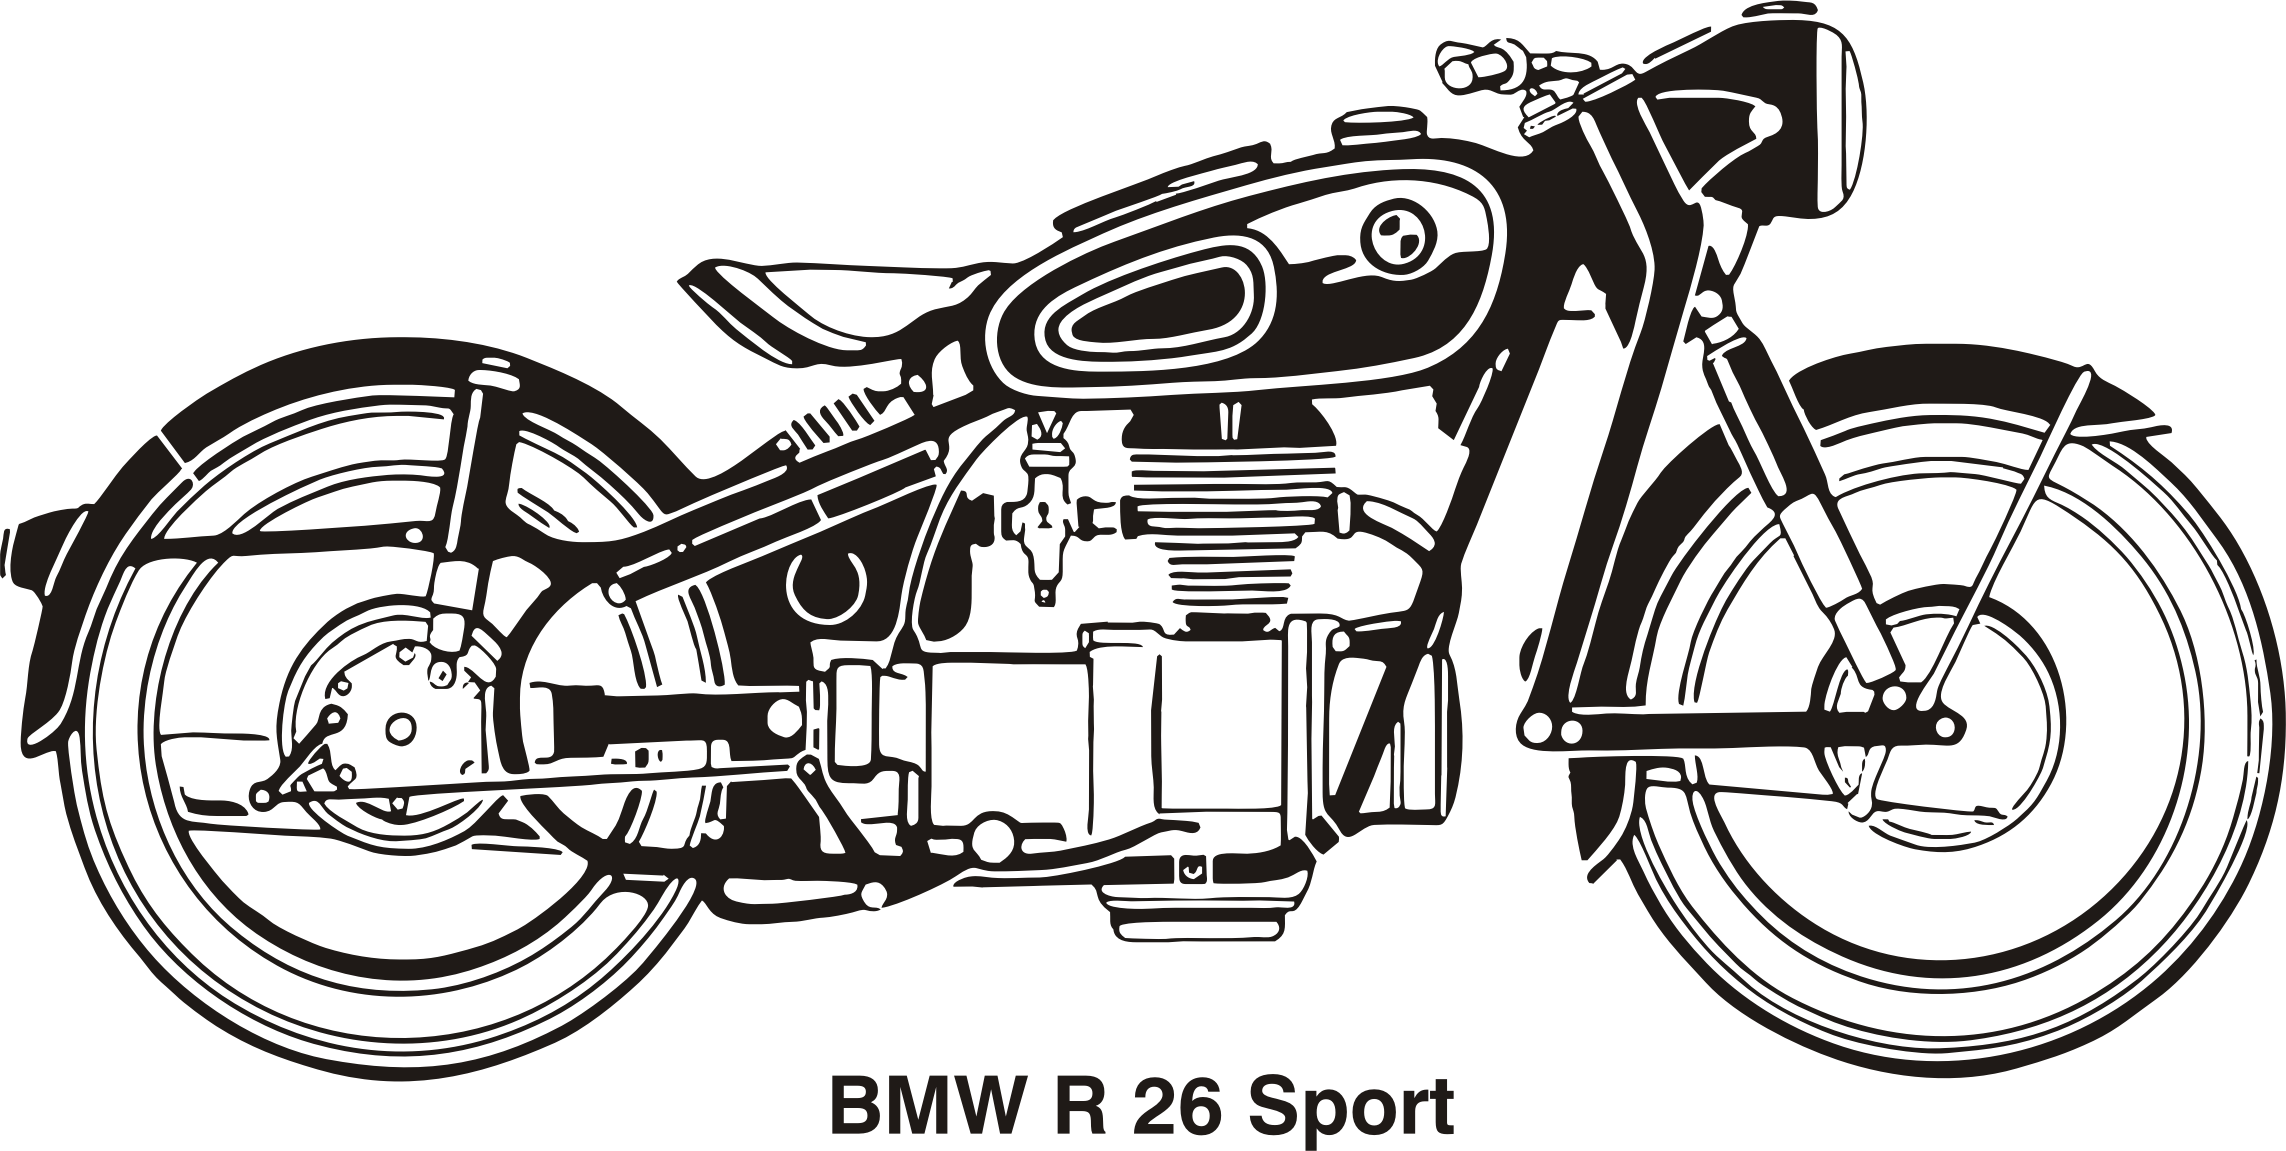 BMW R26 Sport, year 1956 by Vanja